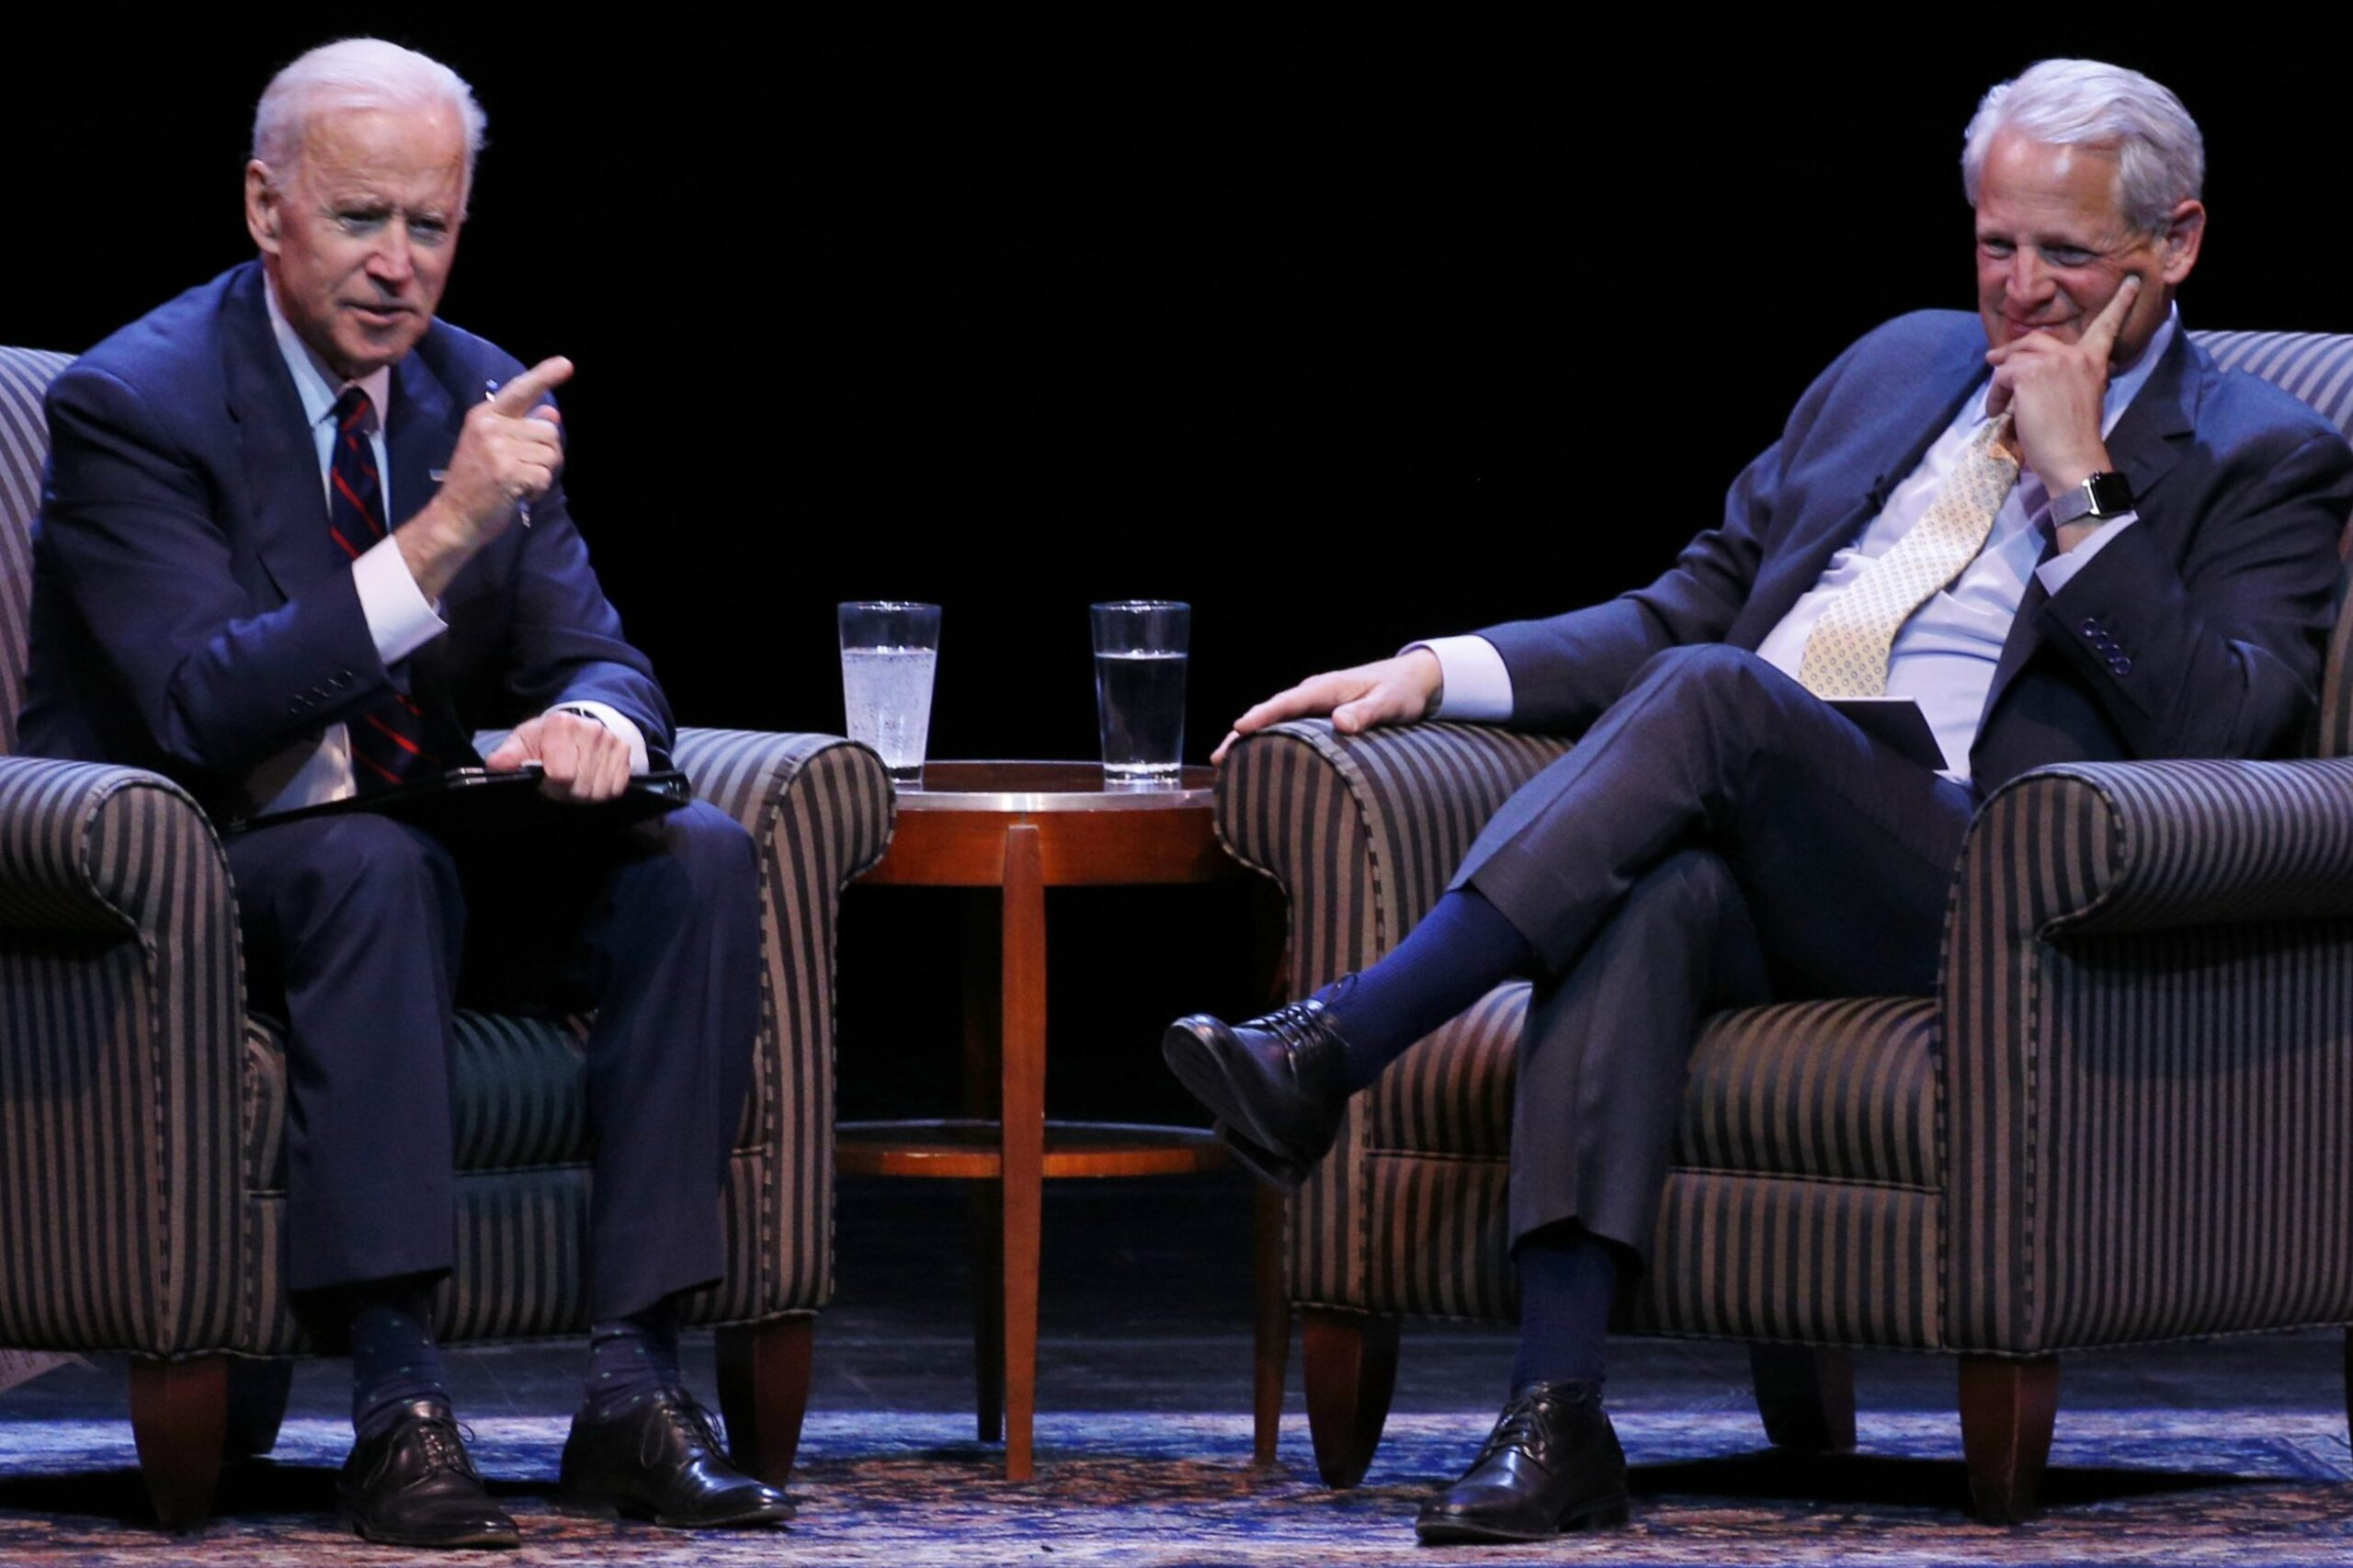 Joe Biden and Steve Israel